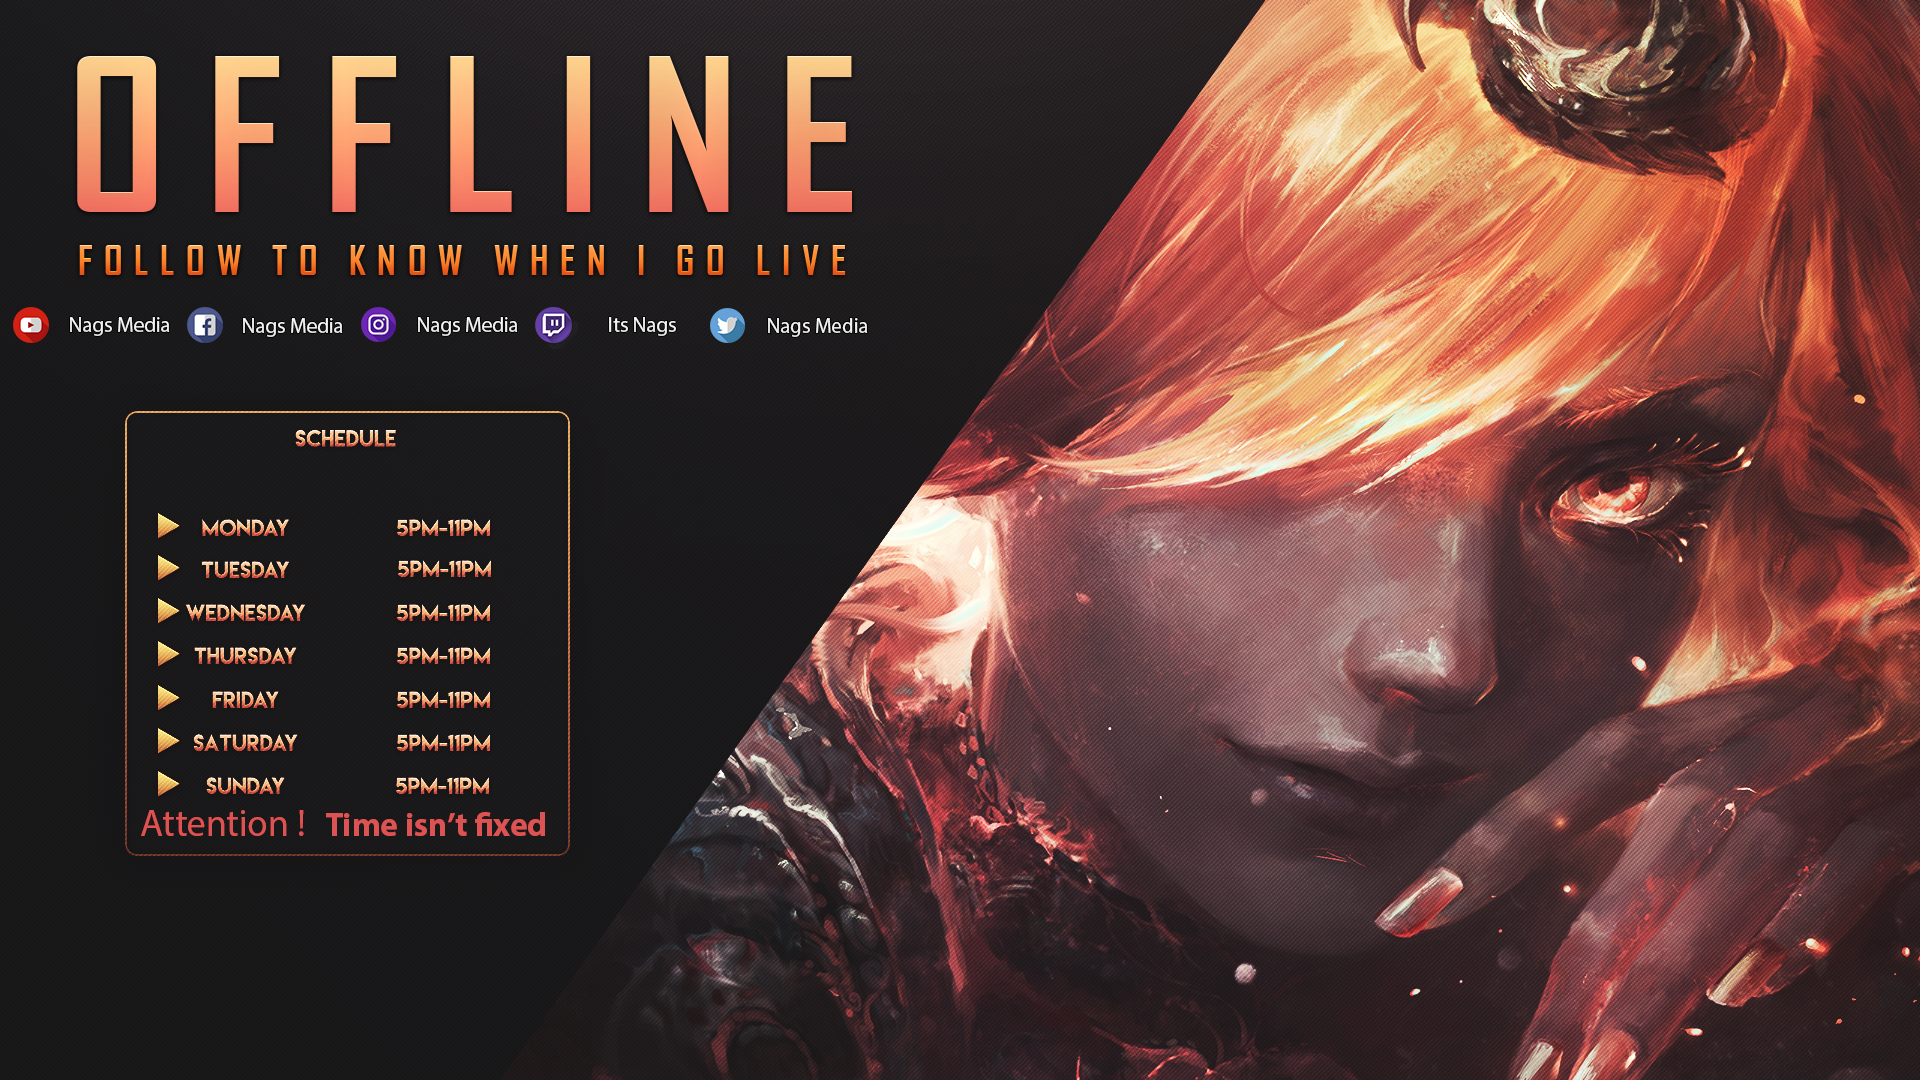 Life style & Work Twitch, Offline, Streaming